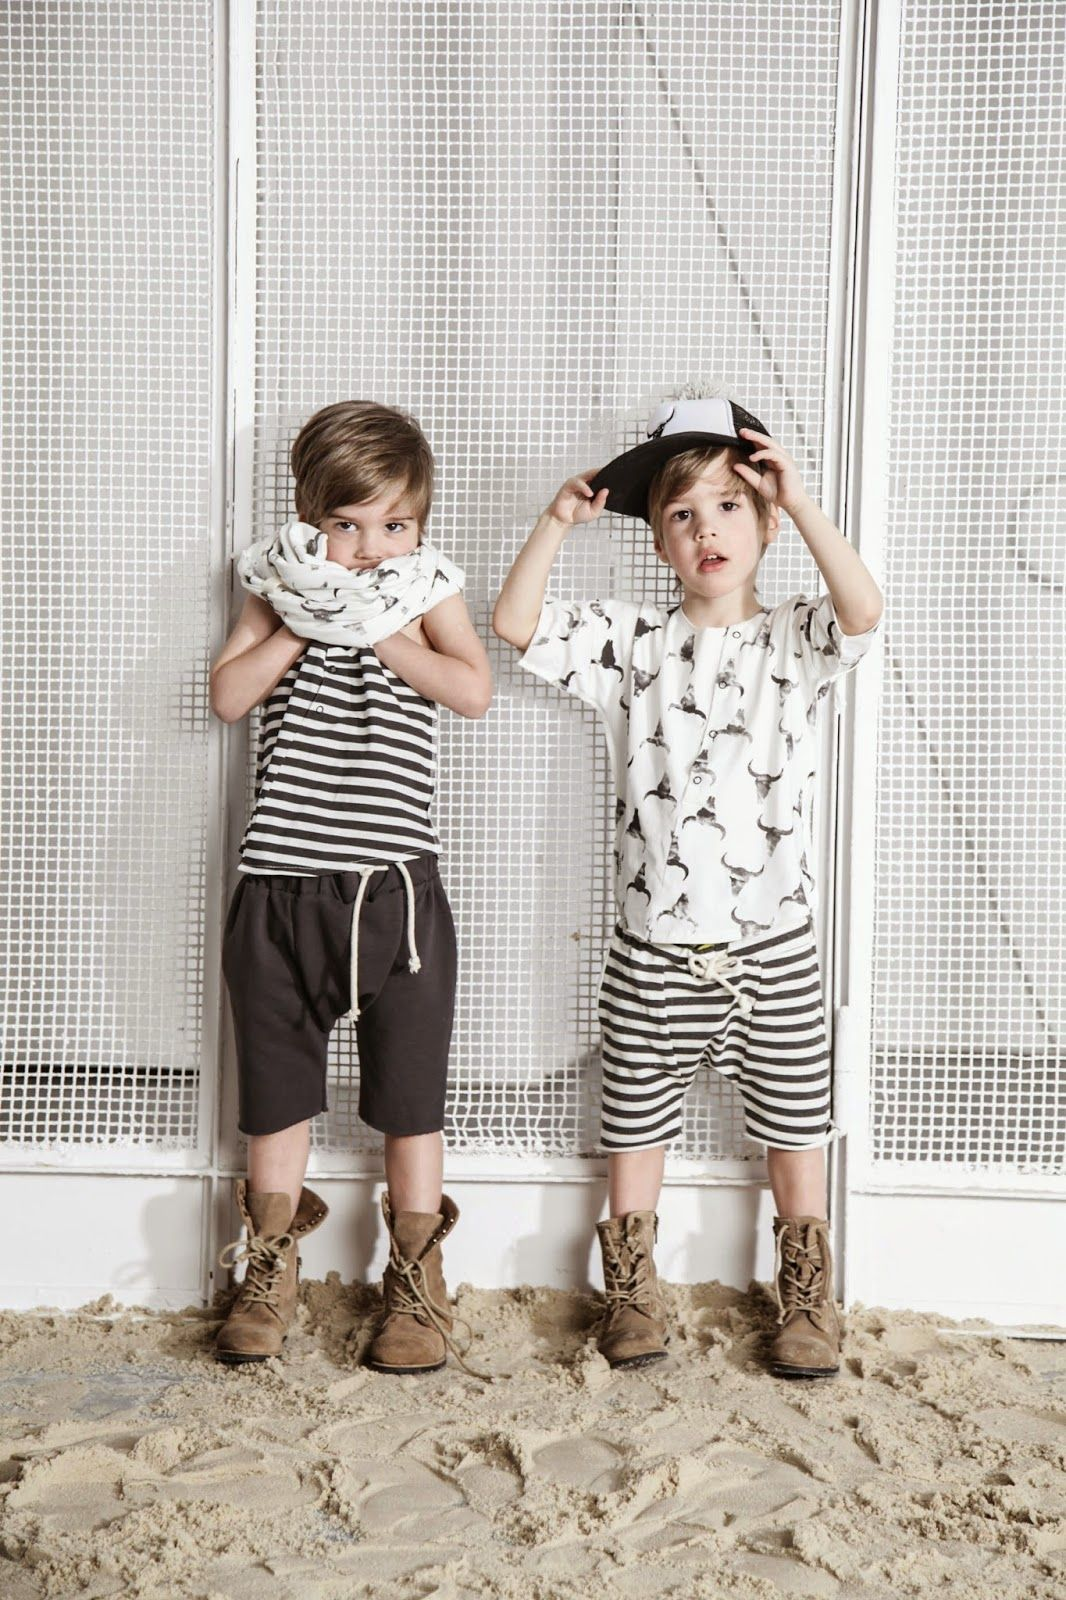 kloobooso ss15  cool kids fashion from poland  coole